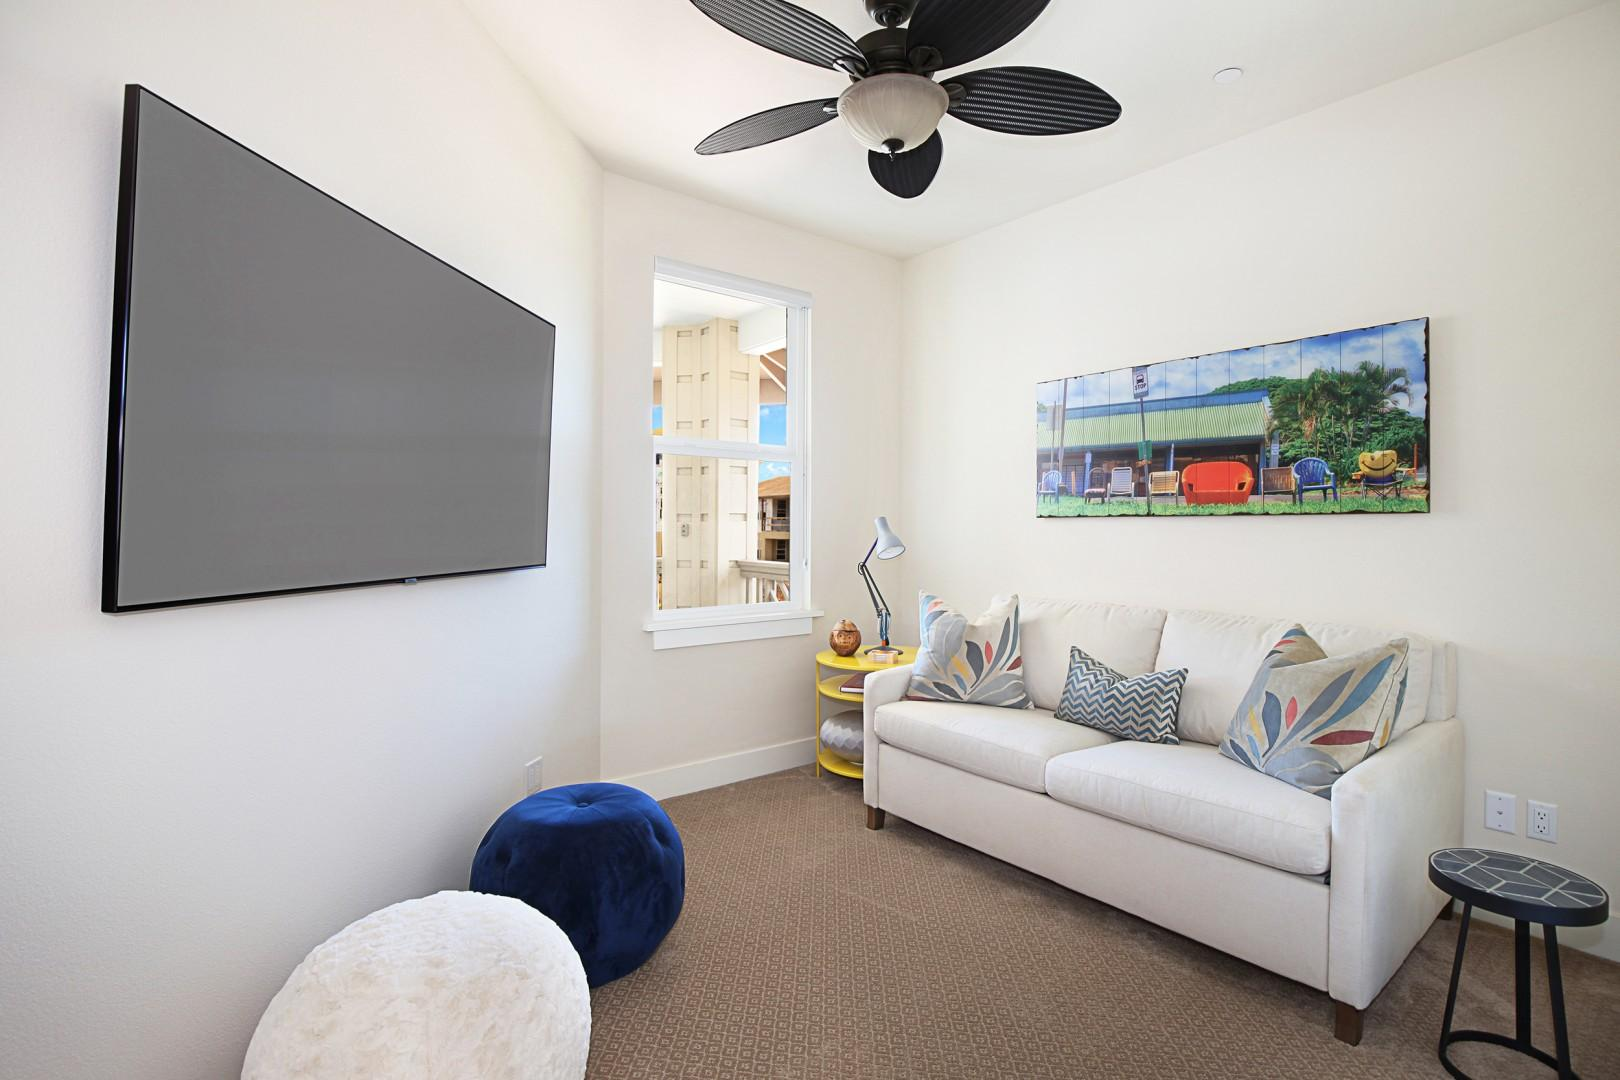 Third bedroom with pull out couch.